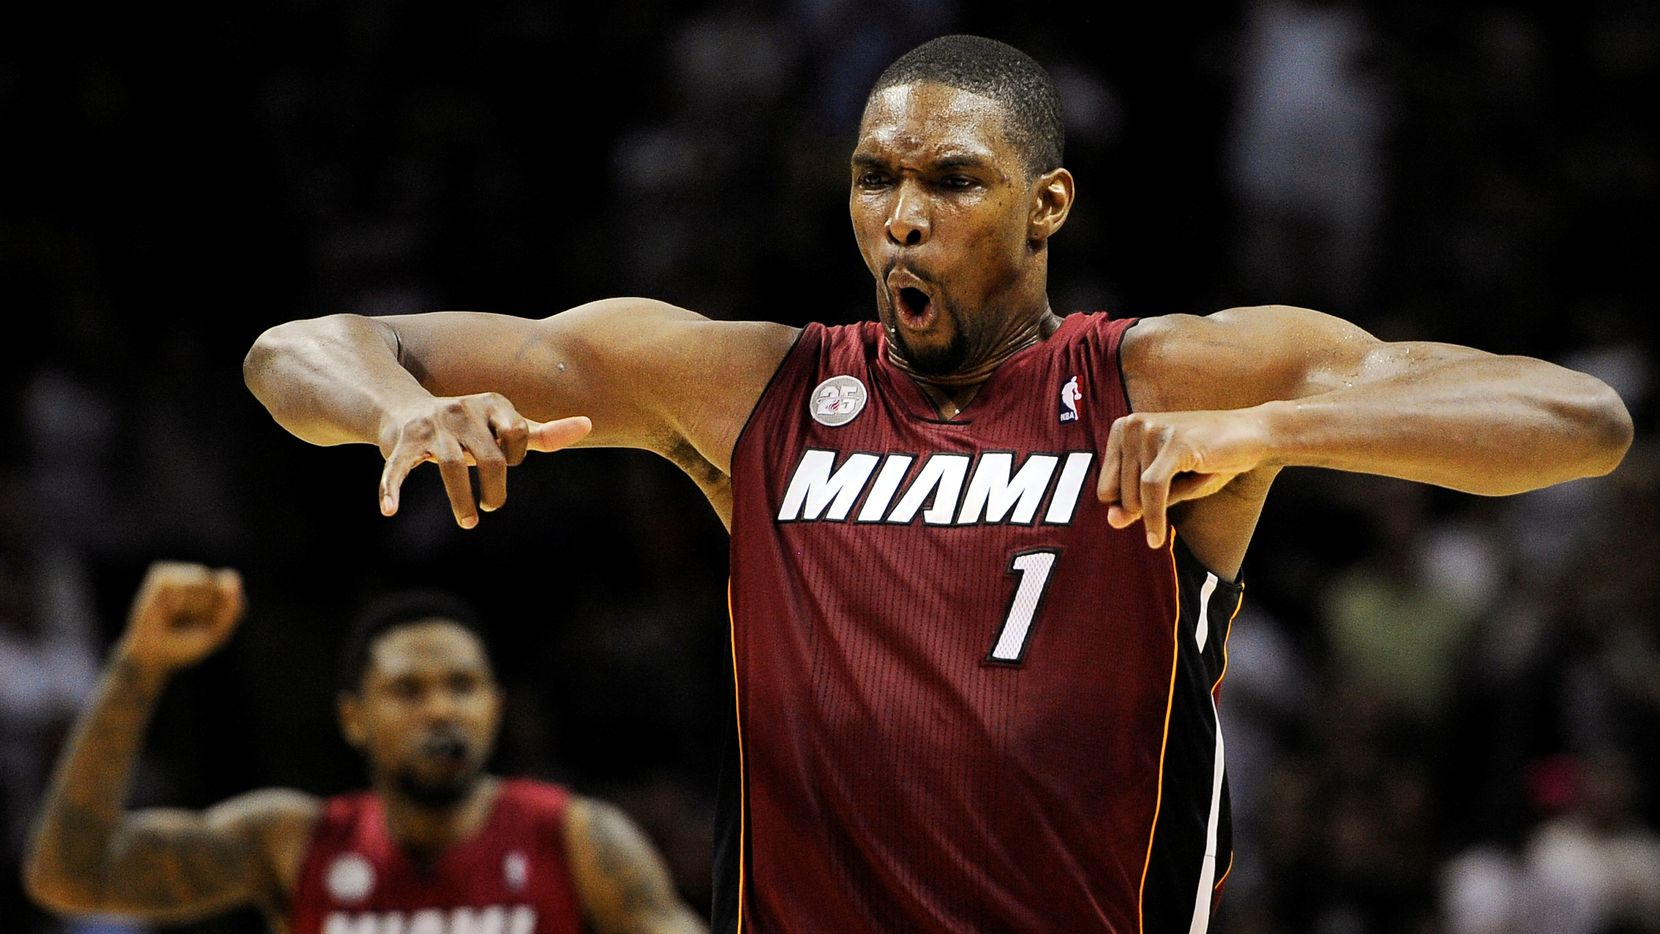 Miami Heat's Chris Bosh (1) yells after scoring the winning basket during the second half of an NBA basketball game against the San Antonio Spurs, Sunday, March 31, 2013, in San Antonio.